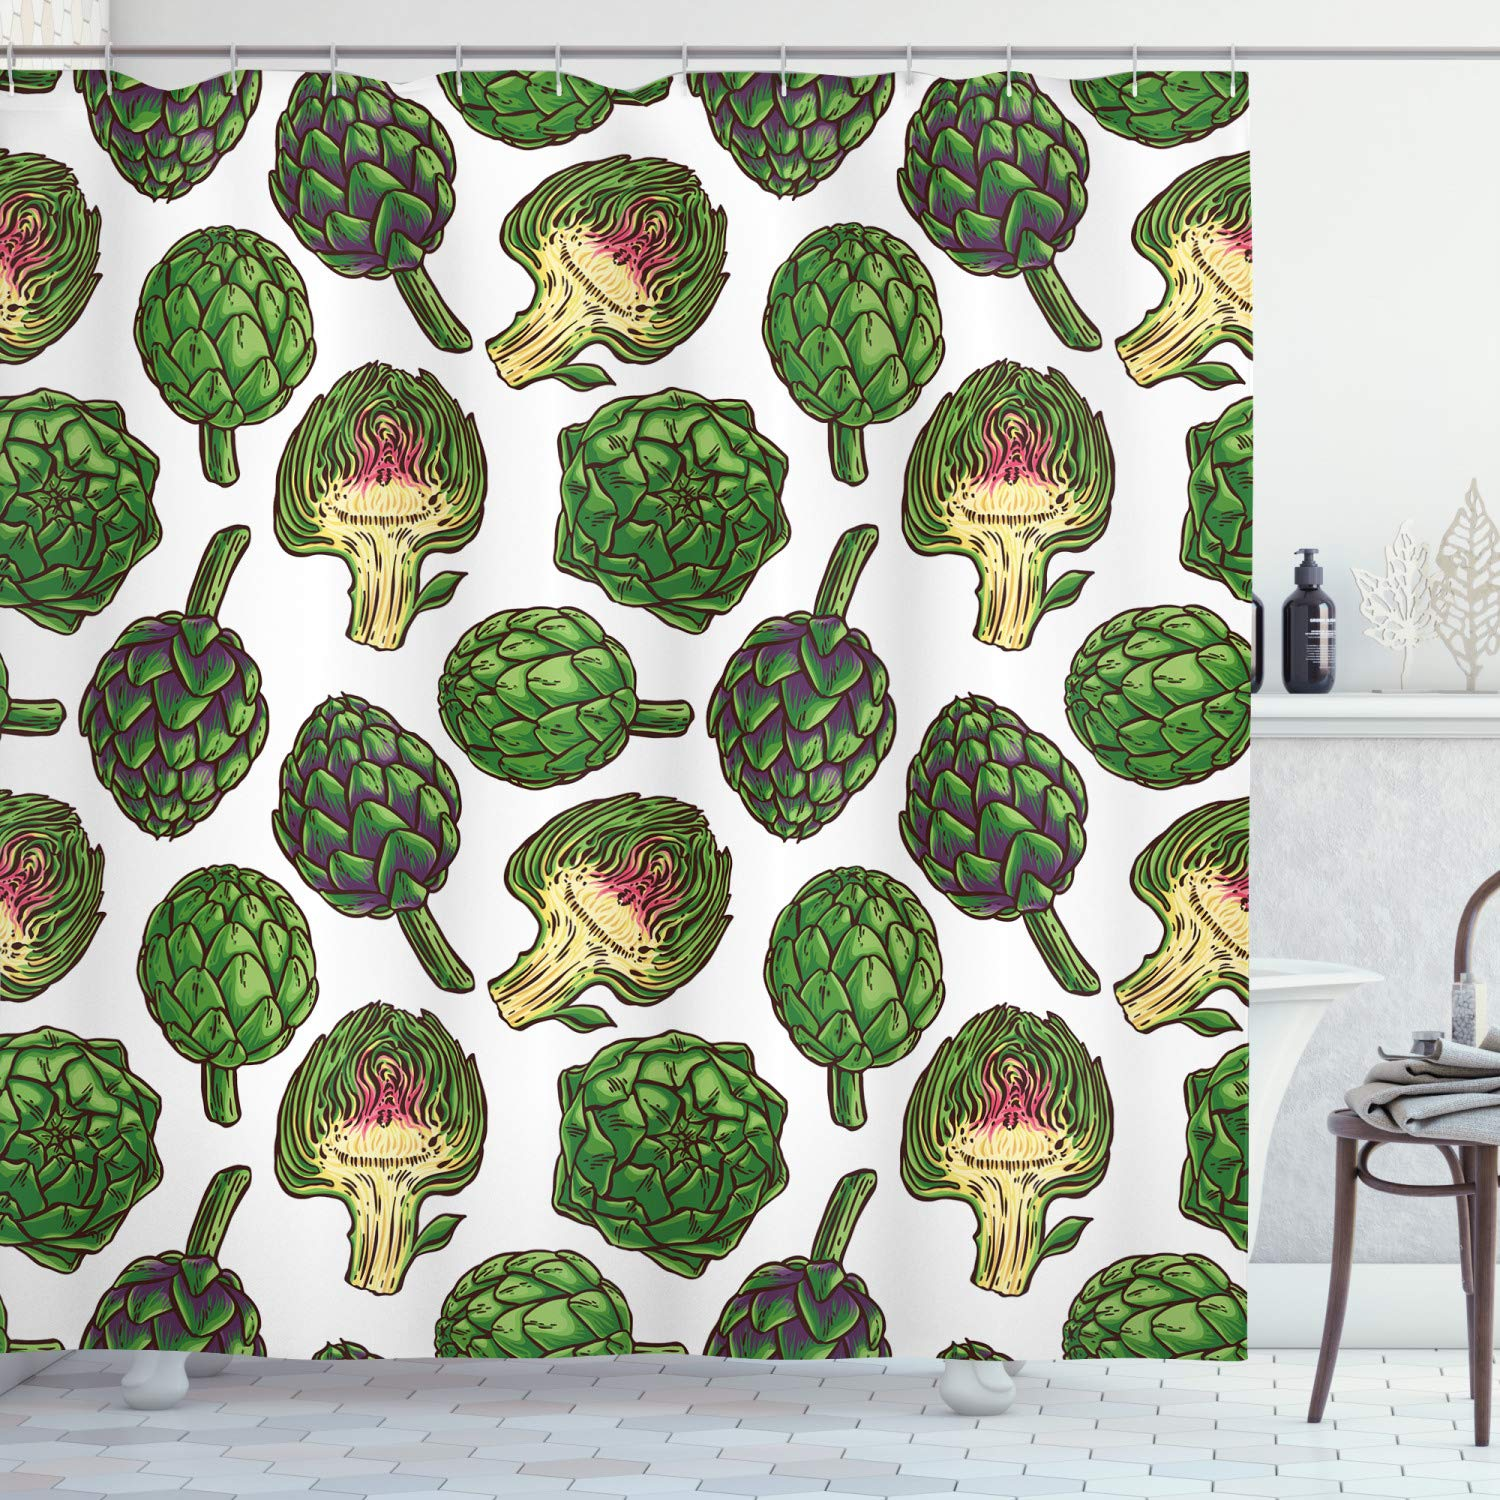 """Ambesonne Artichoke Shower Curtain, Hand Drawn Healthy Foods in Various Forms Organic Natural Gourmet Artwork Print, Cloth Fabric Bathroom Decor Set with Hooks, 75"""" Long, Fern Green"""